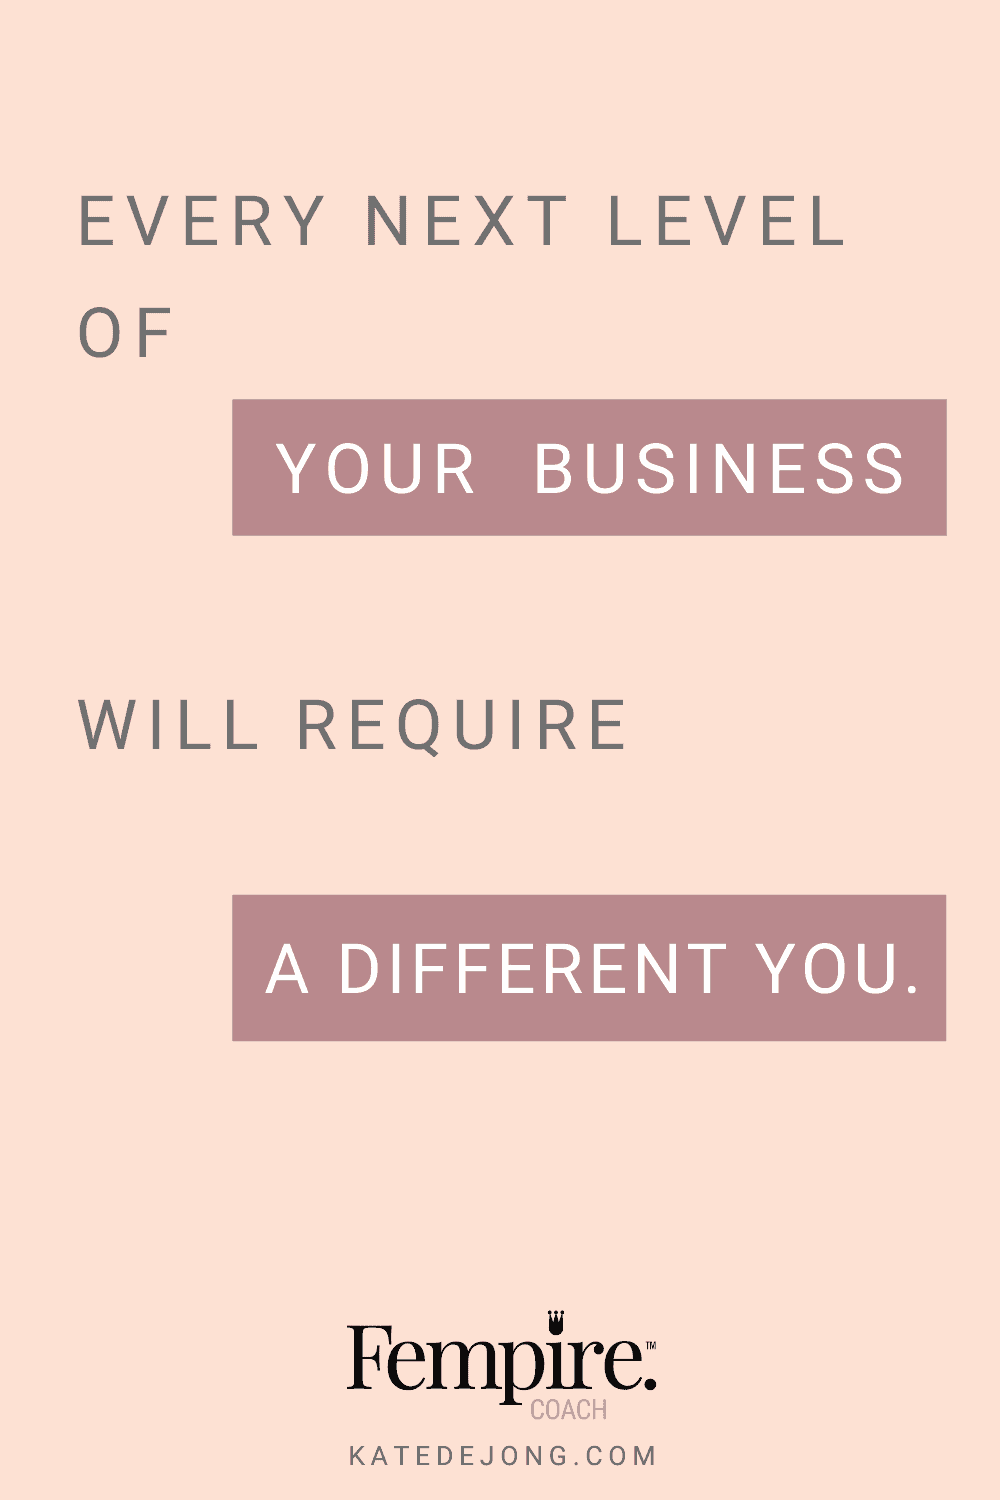 To break through to the next level of growth and profit in your business, it's going to require a new mindset and way of thinking. As a business owner, your business is a direct reflection of you and your way of thinking. Discover how you can shift your mindset to embrace new levels of growth and profit. #fempire #smallbusiness #businesscoach #businesscoachforwomen #entrepreneur #businessgrowth #growthstrategies